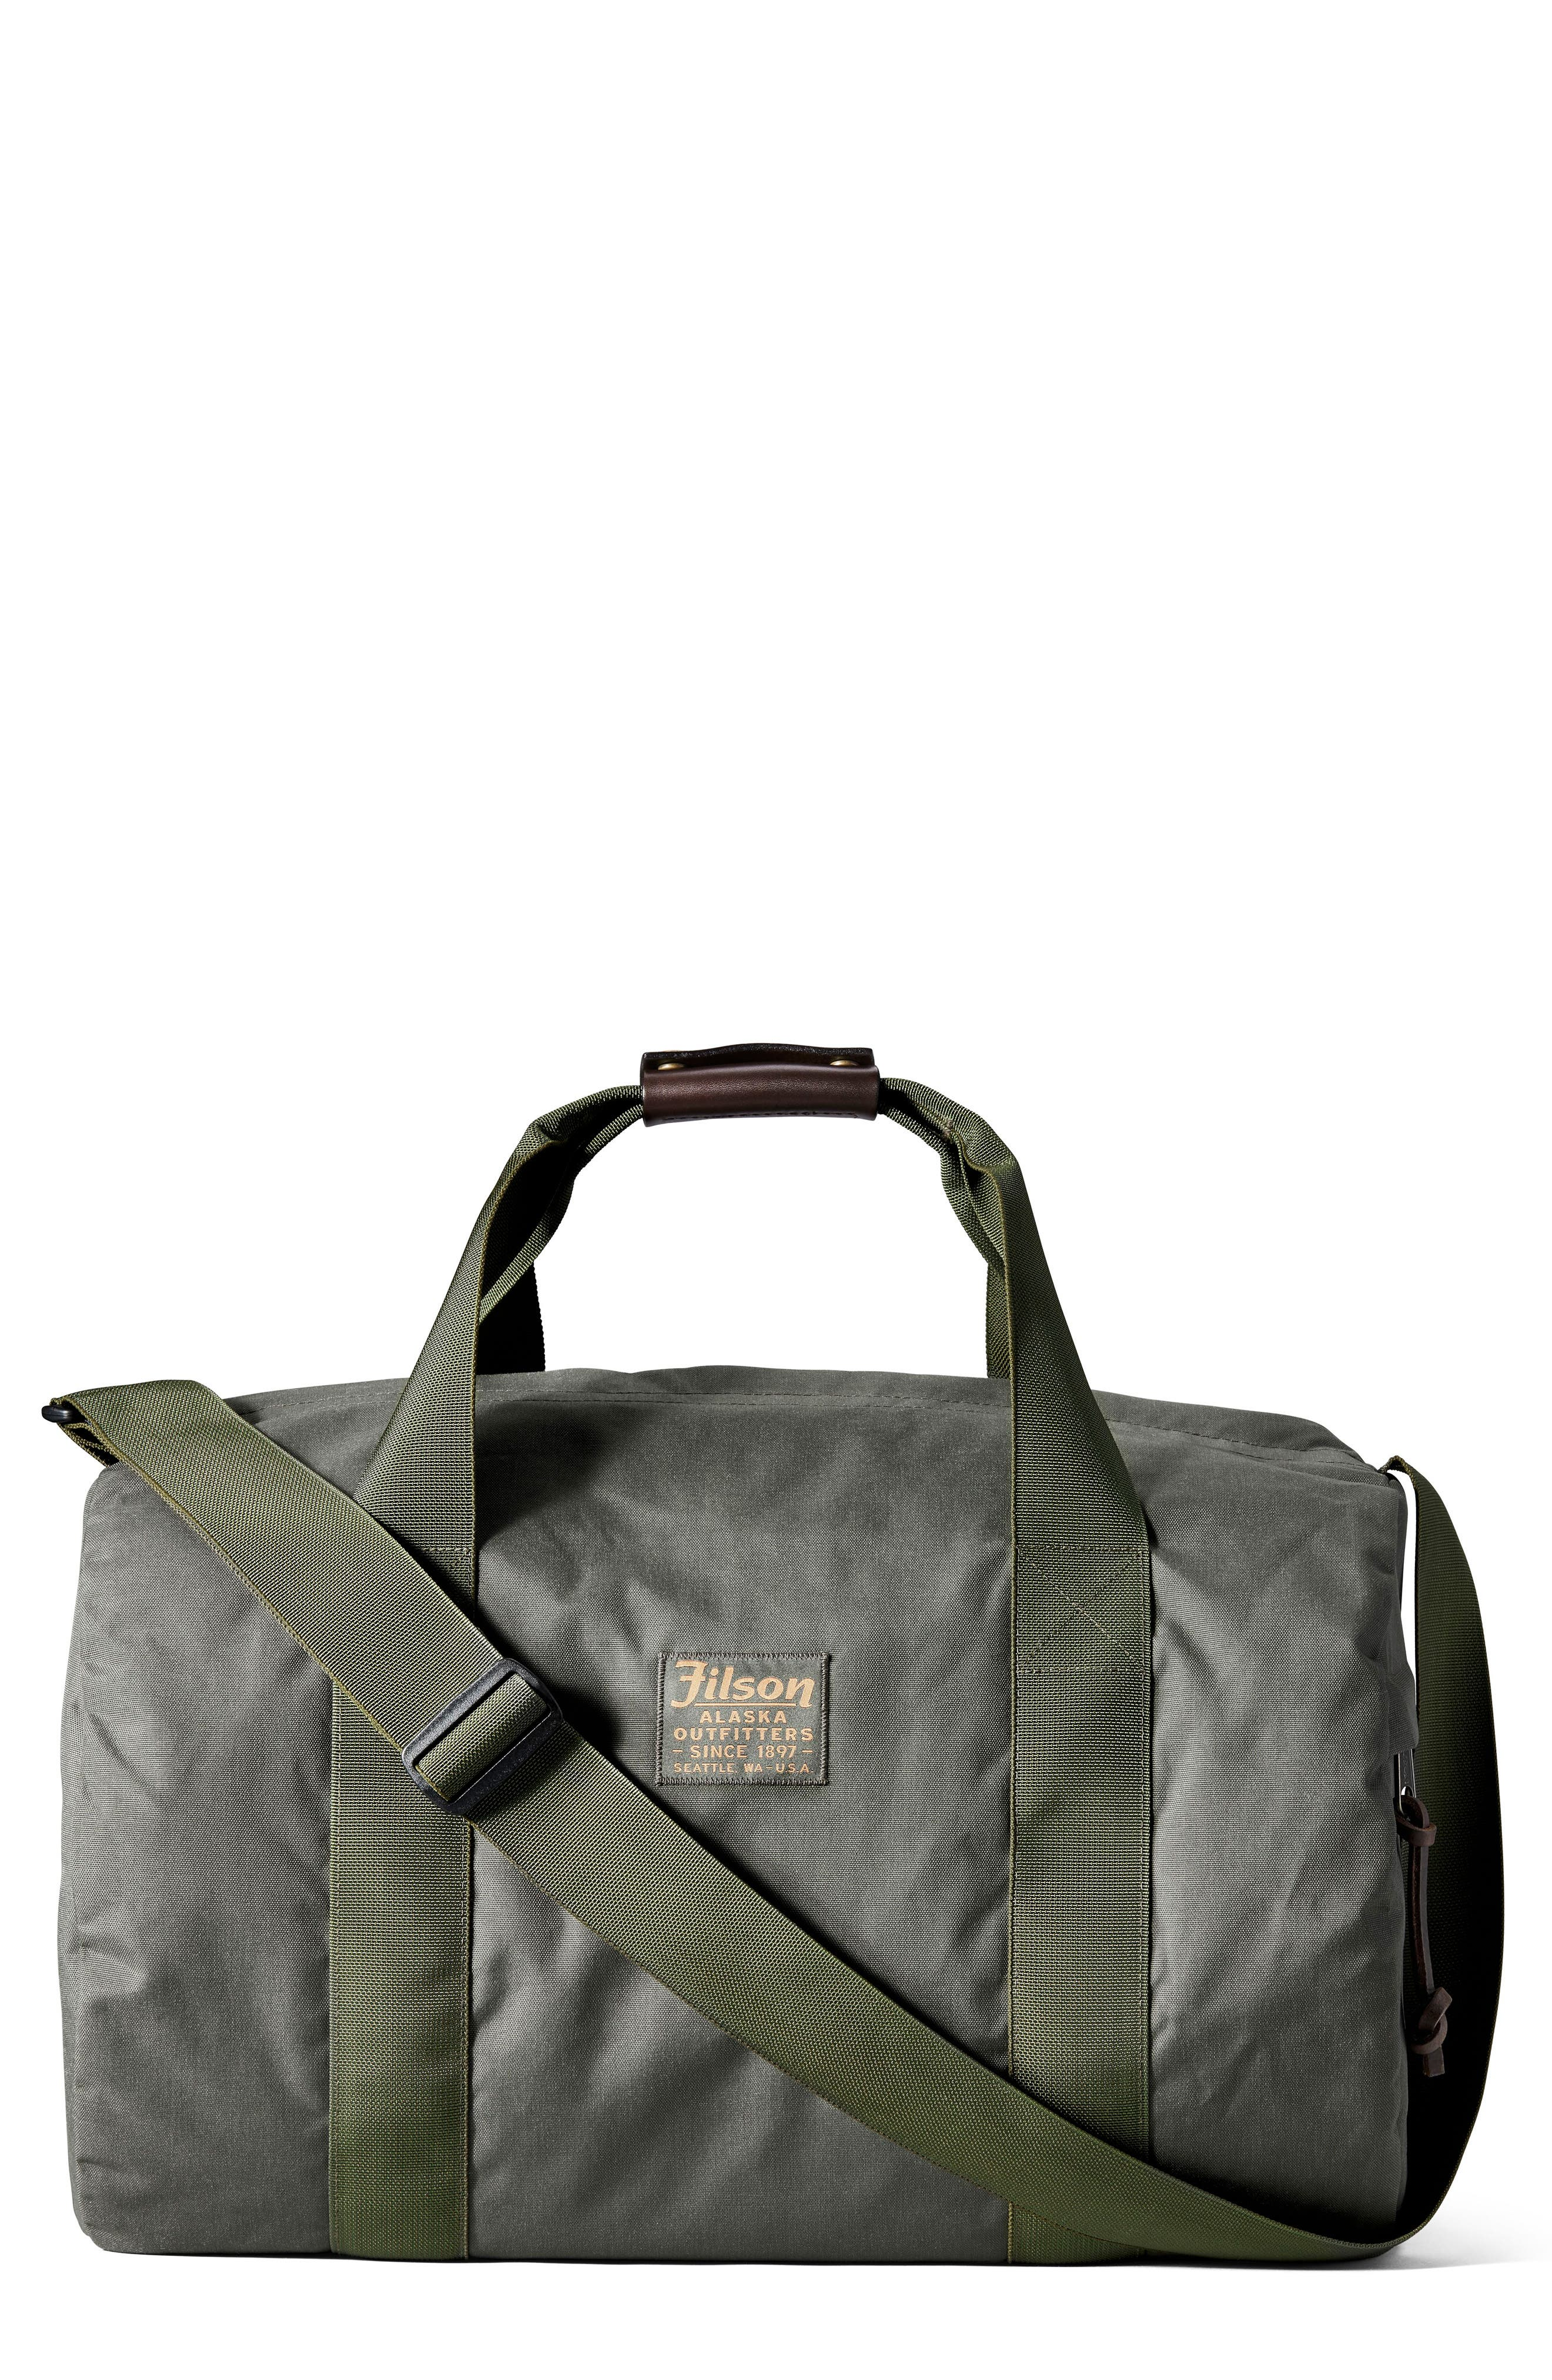 FILSON Barrel Duffel Bag